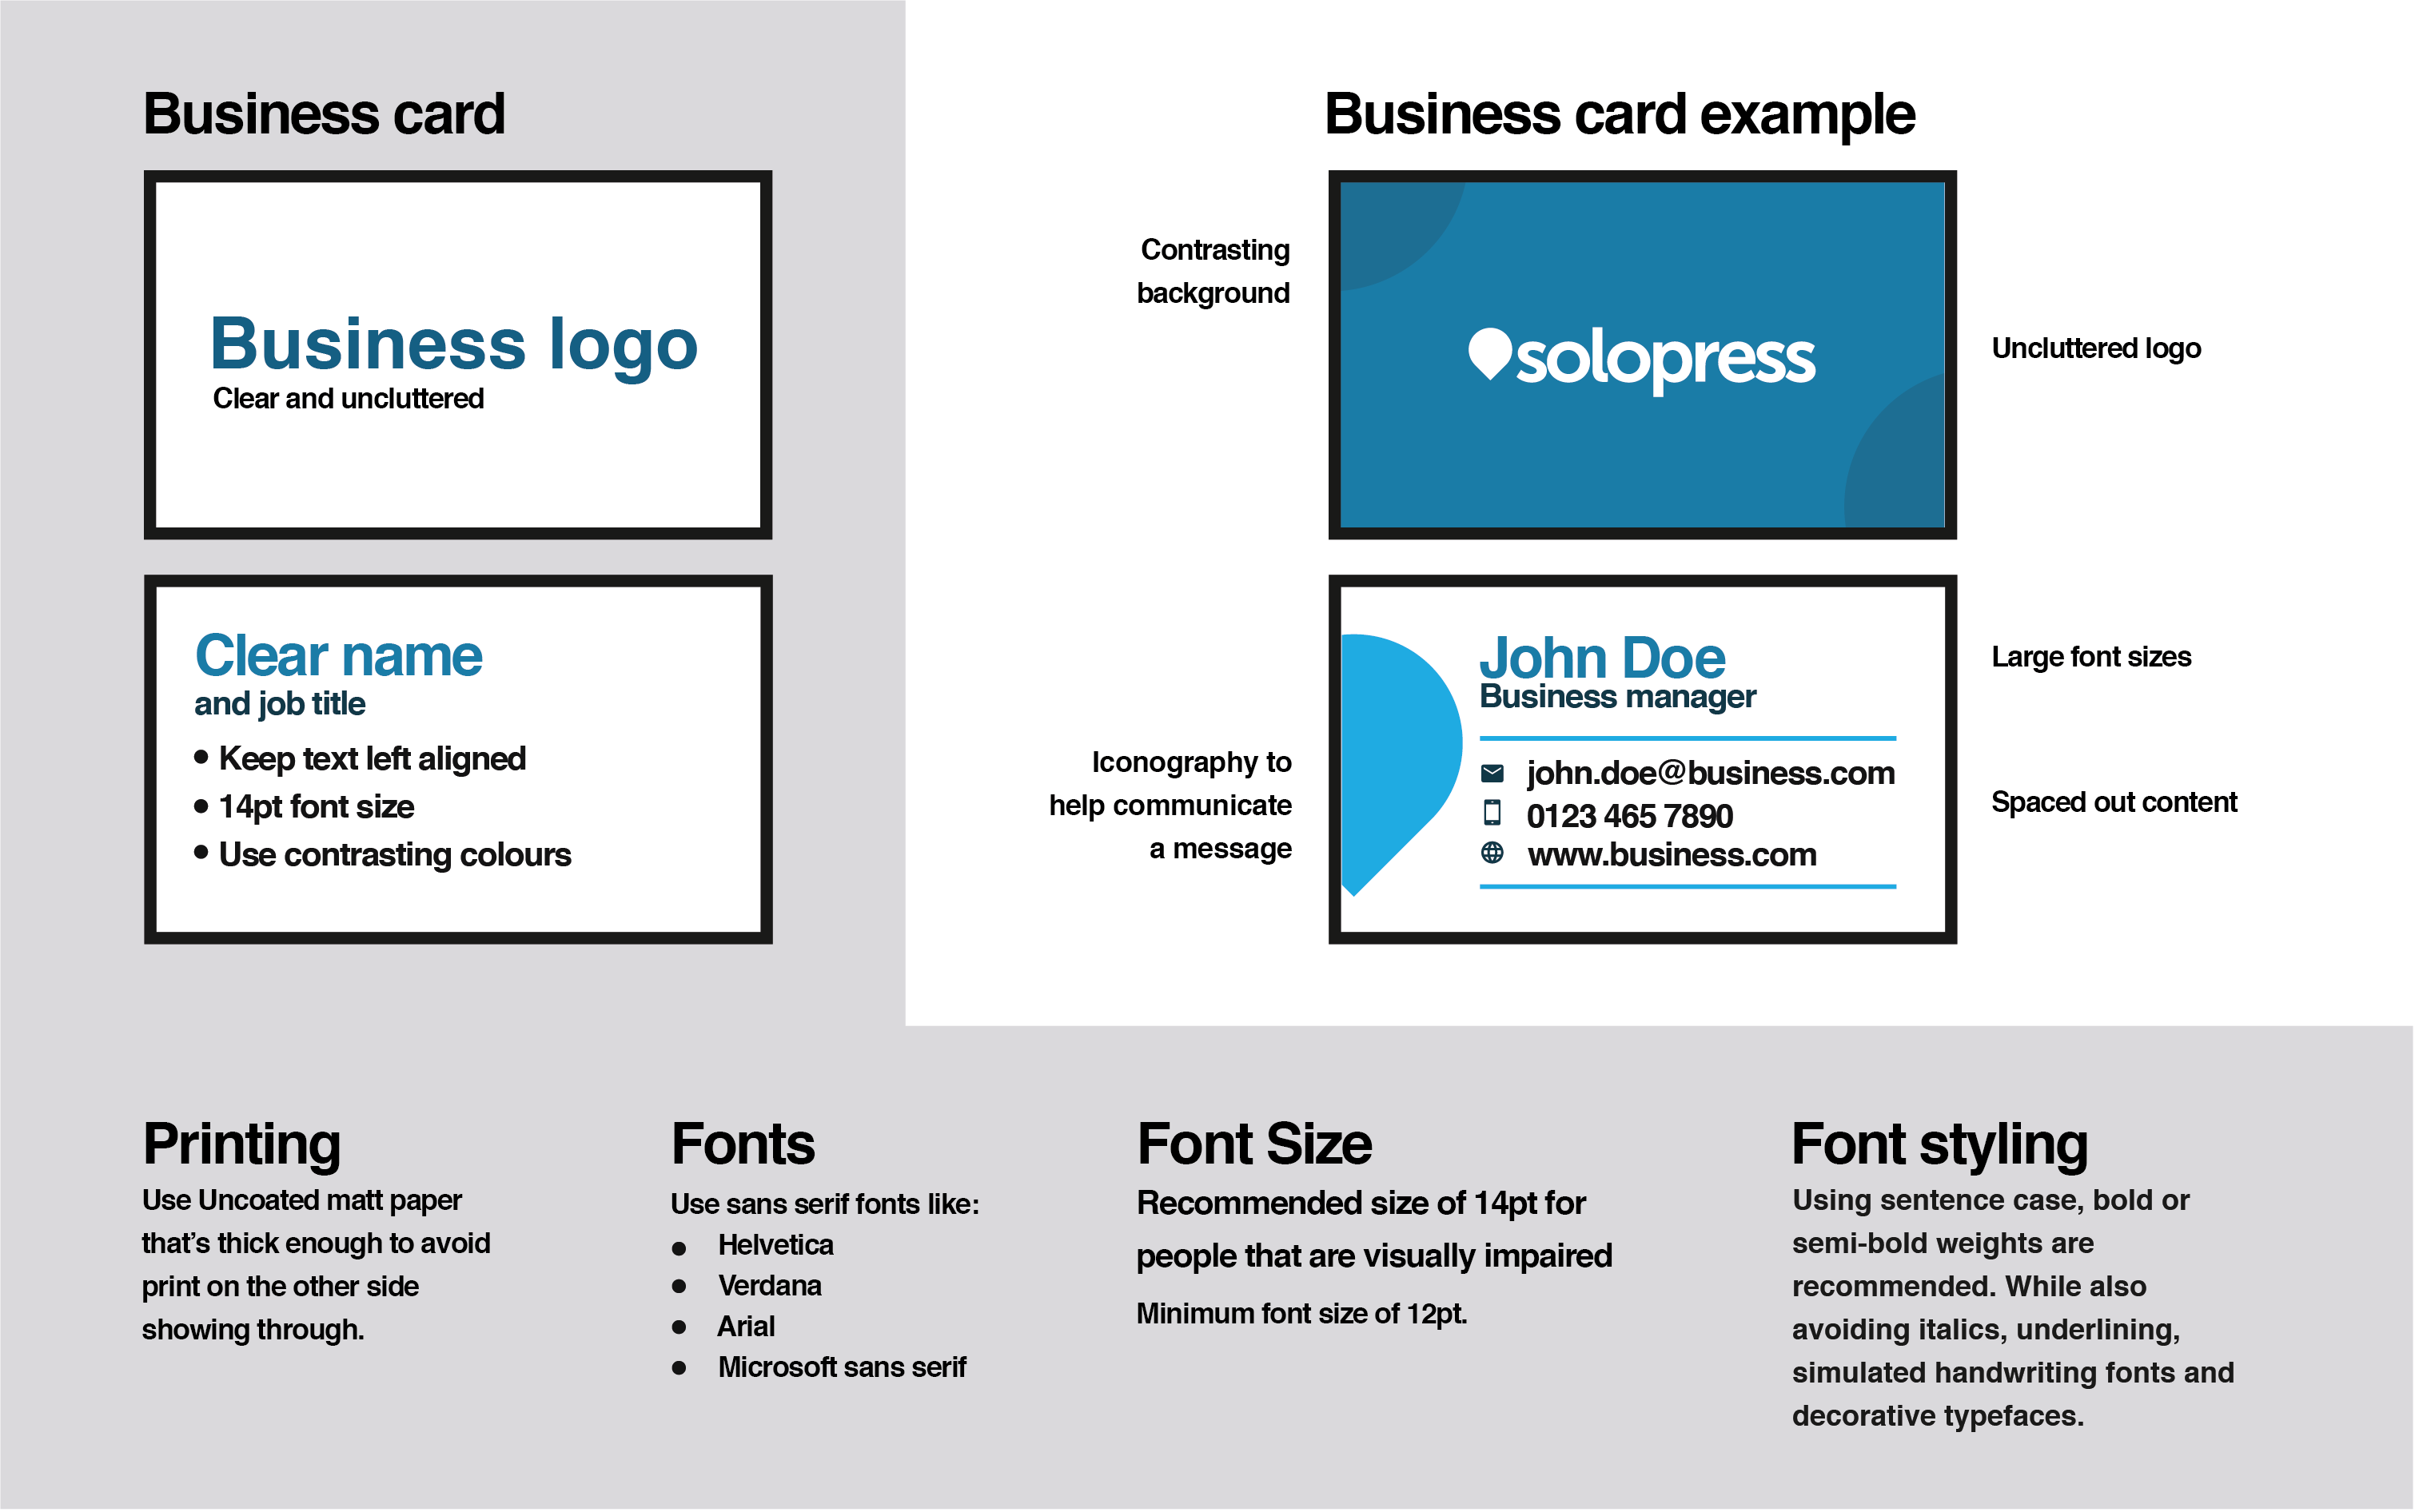 Solopress Business Card Accessibility Guidelines